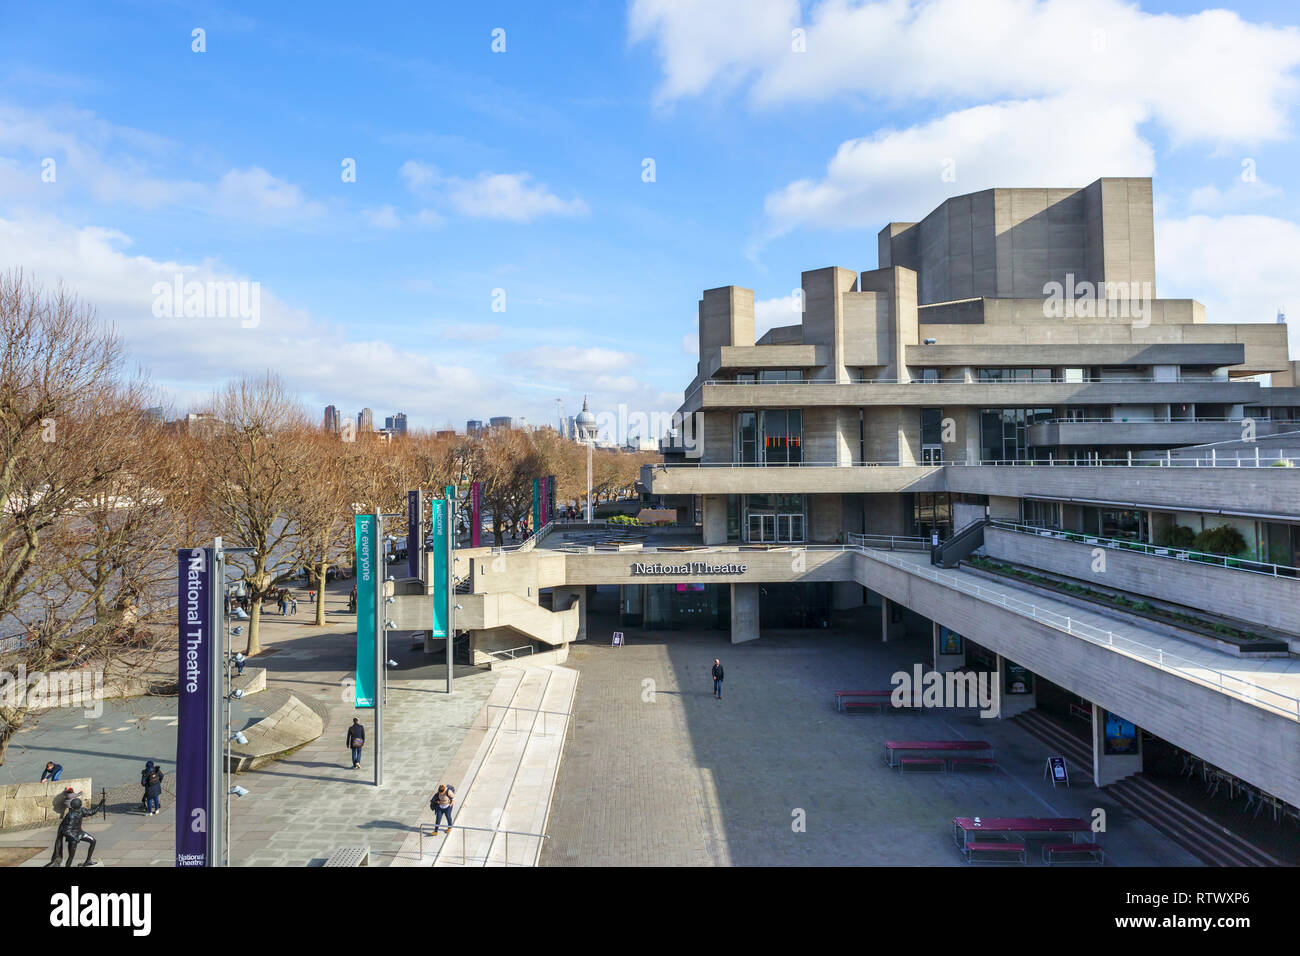 National Theatre on the South bank of the River Thames, London SE1, a popular venue for the performing arts and cultural activities - Stock Image